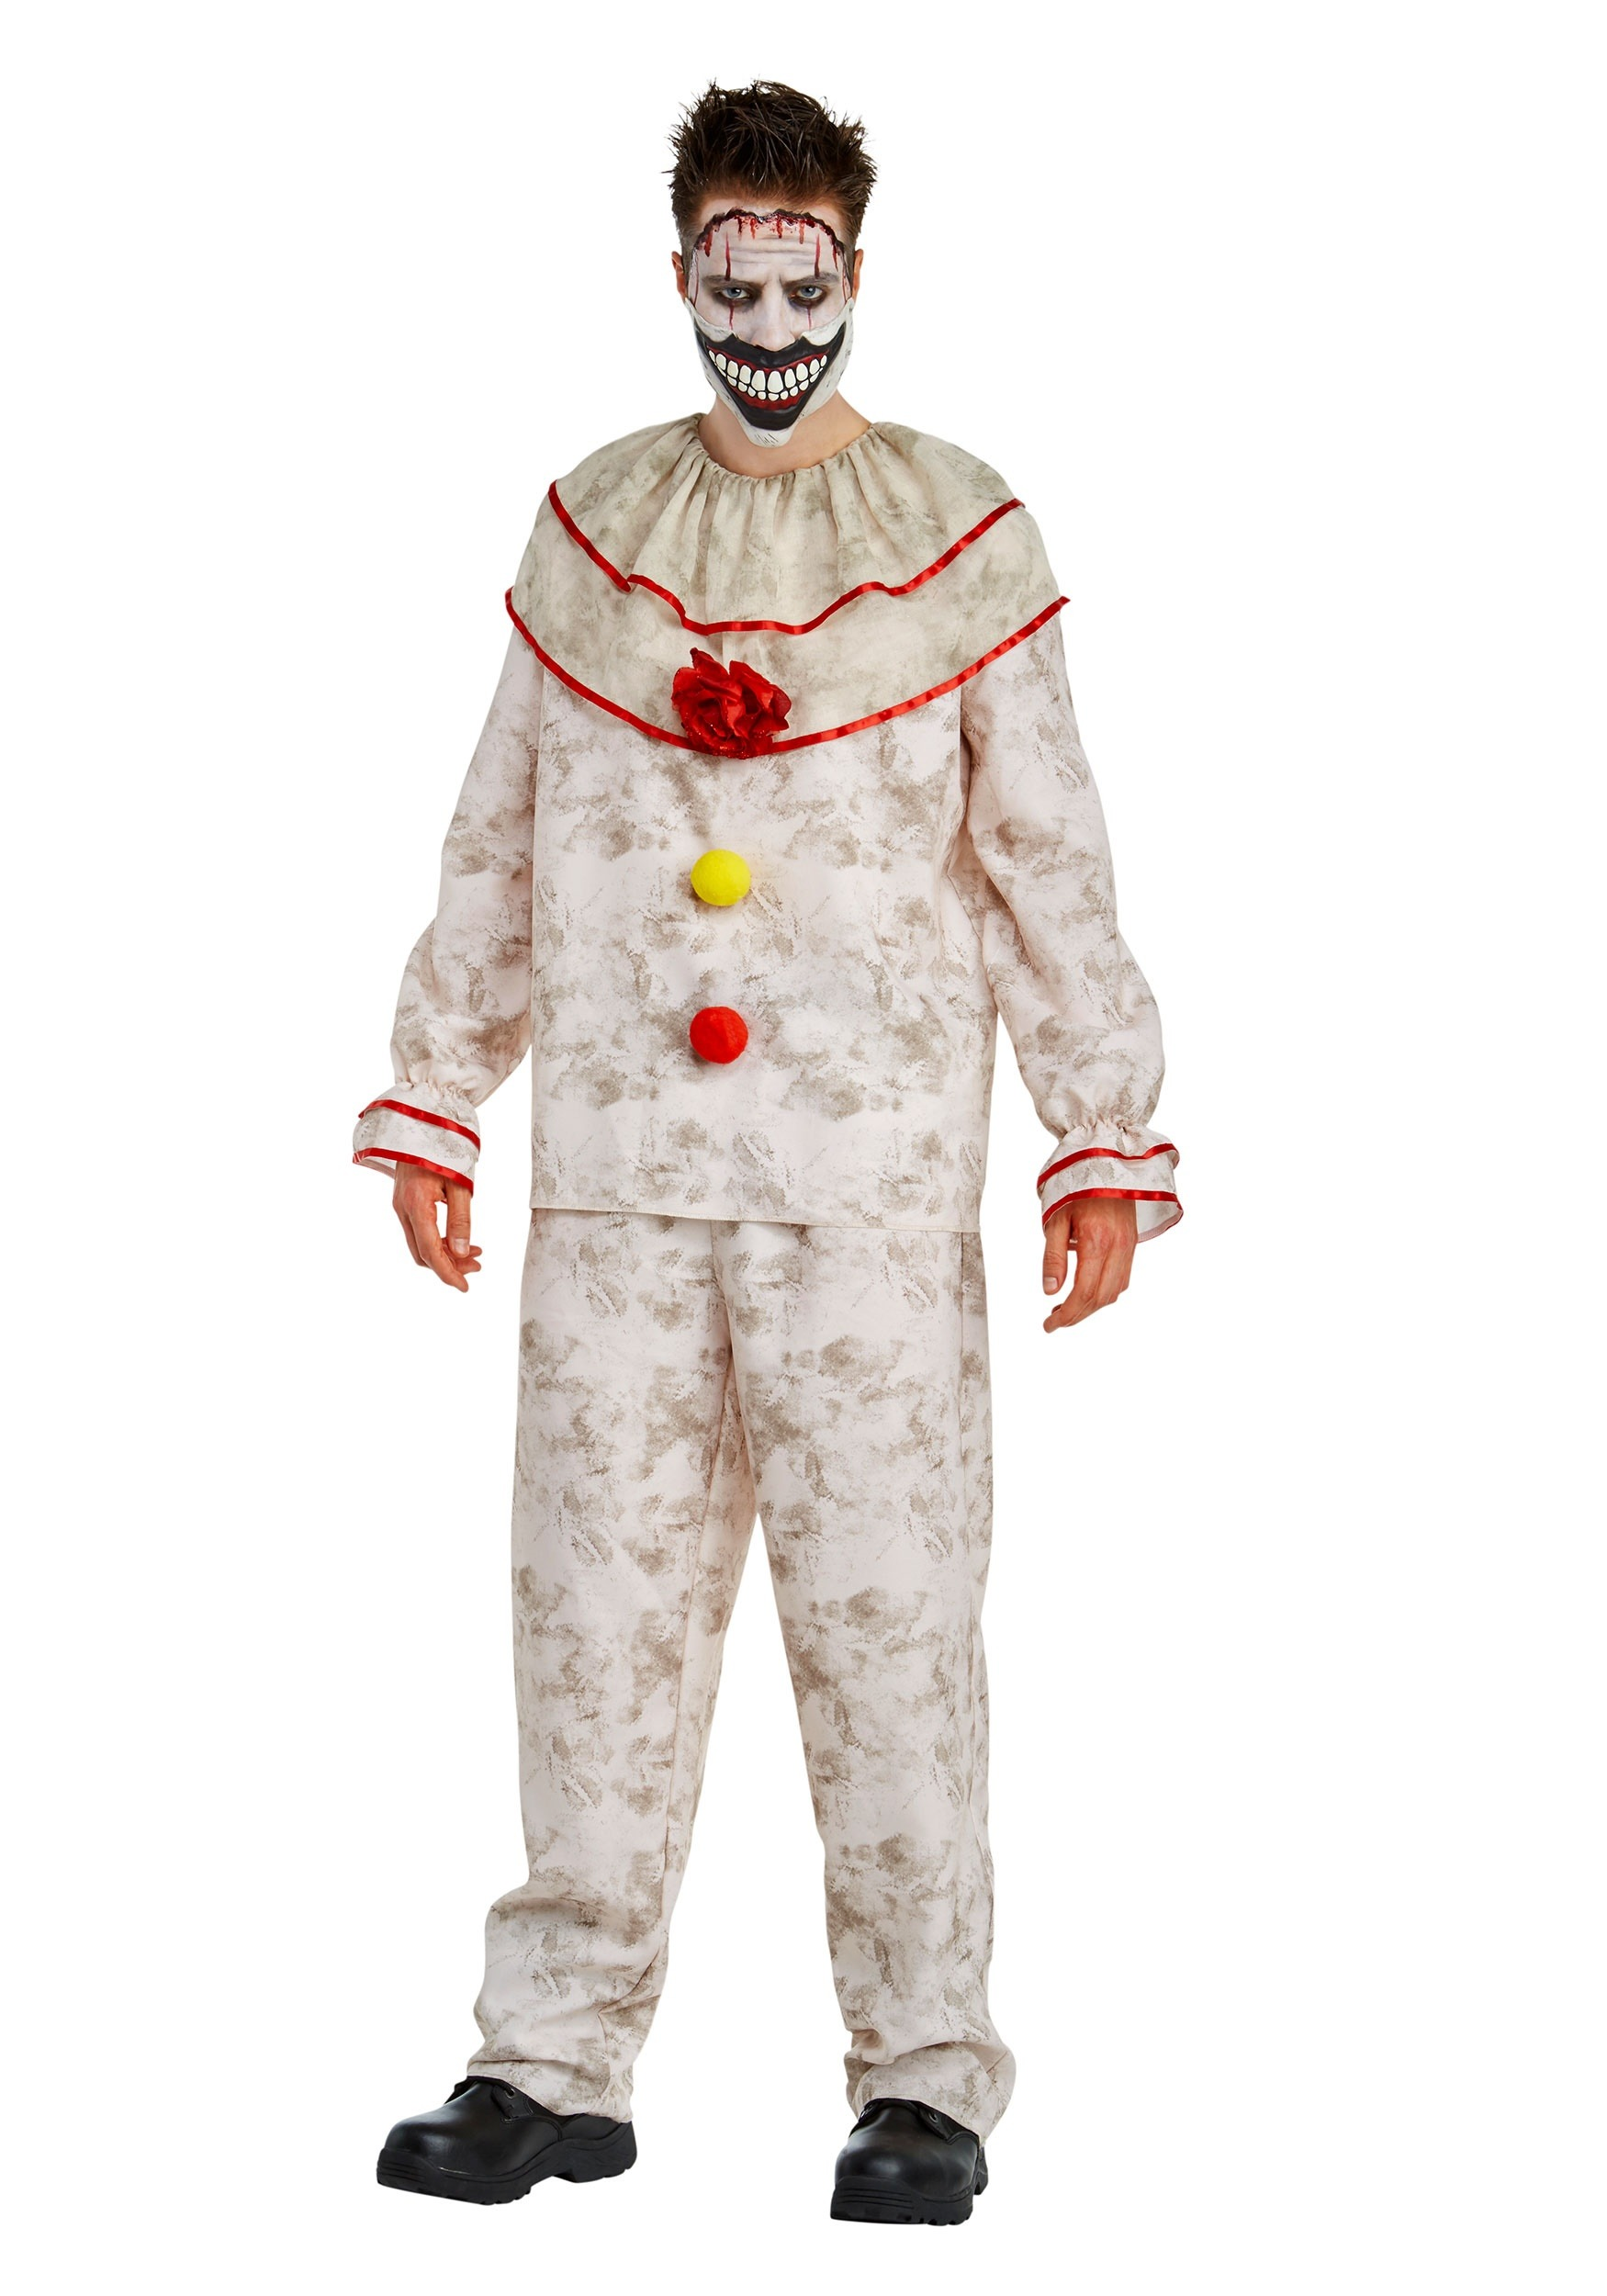 American Horror Story Twisty the Clown Costume for Men